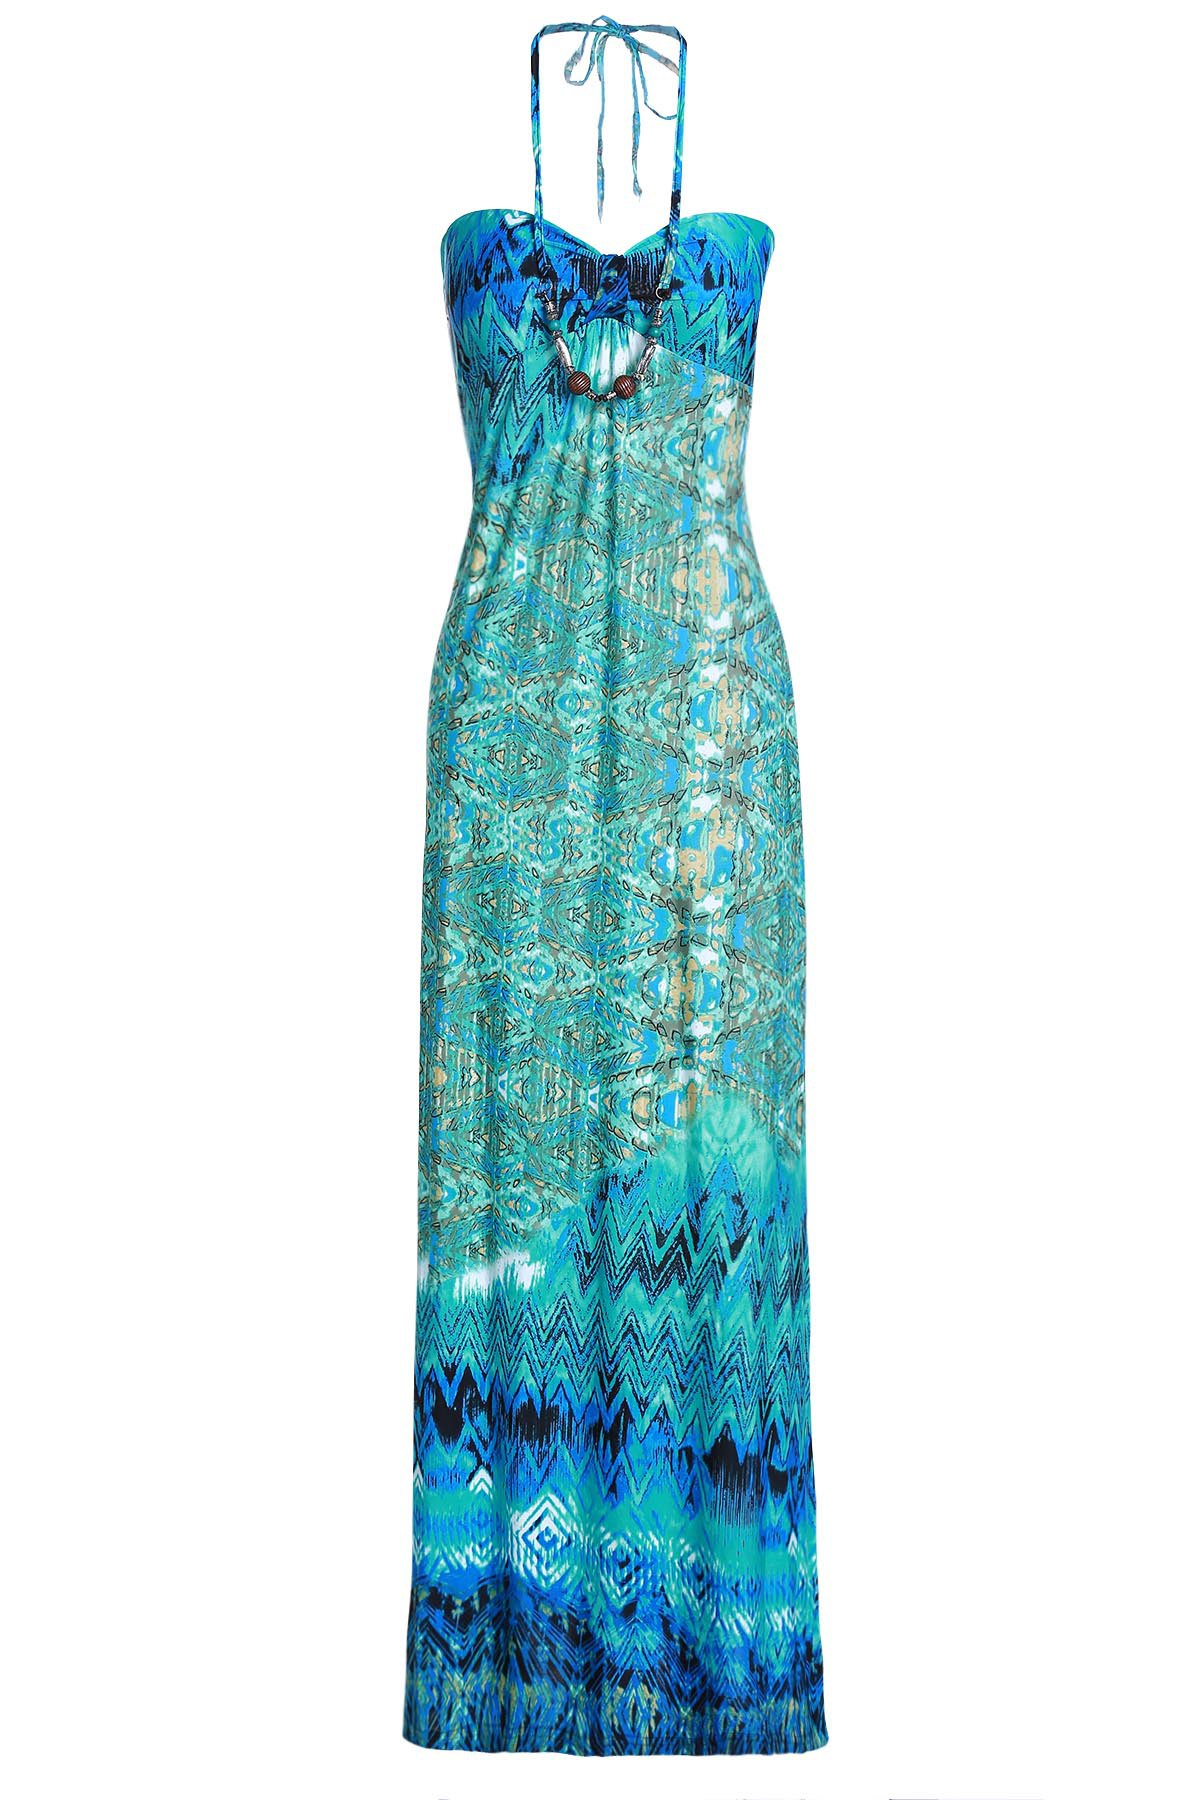 Halter Neck Jewelled Printed Dress